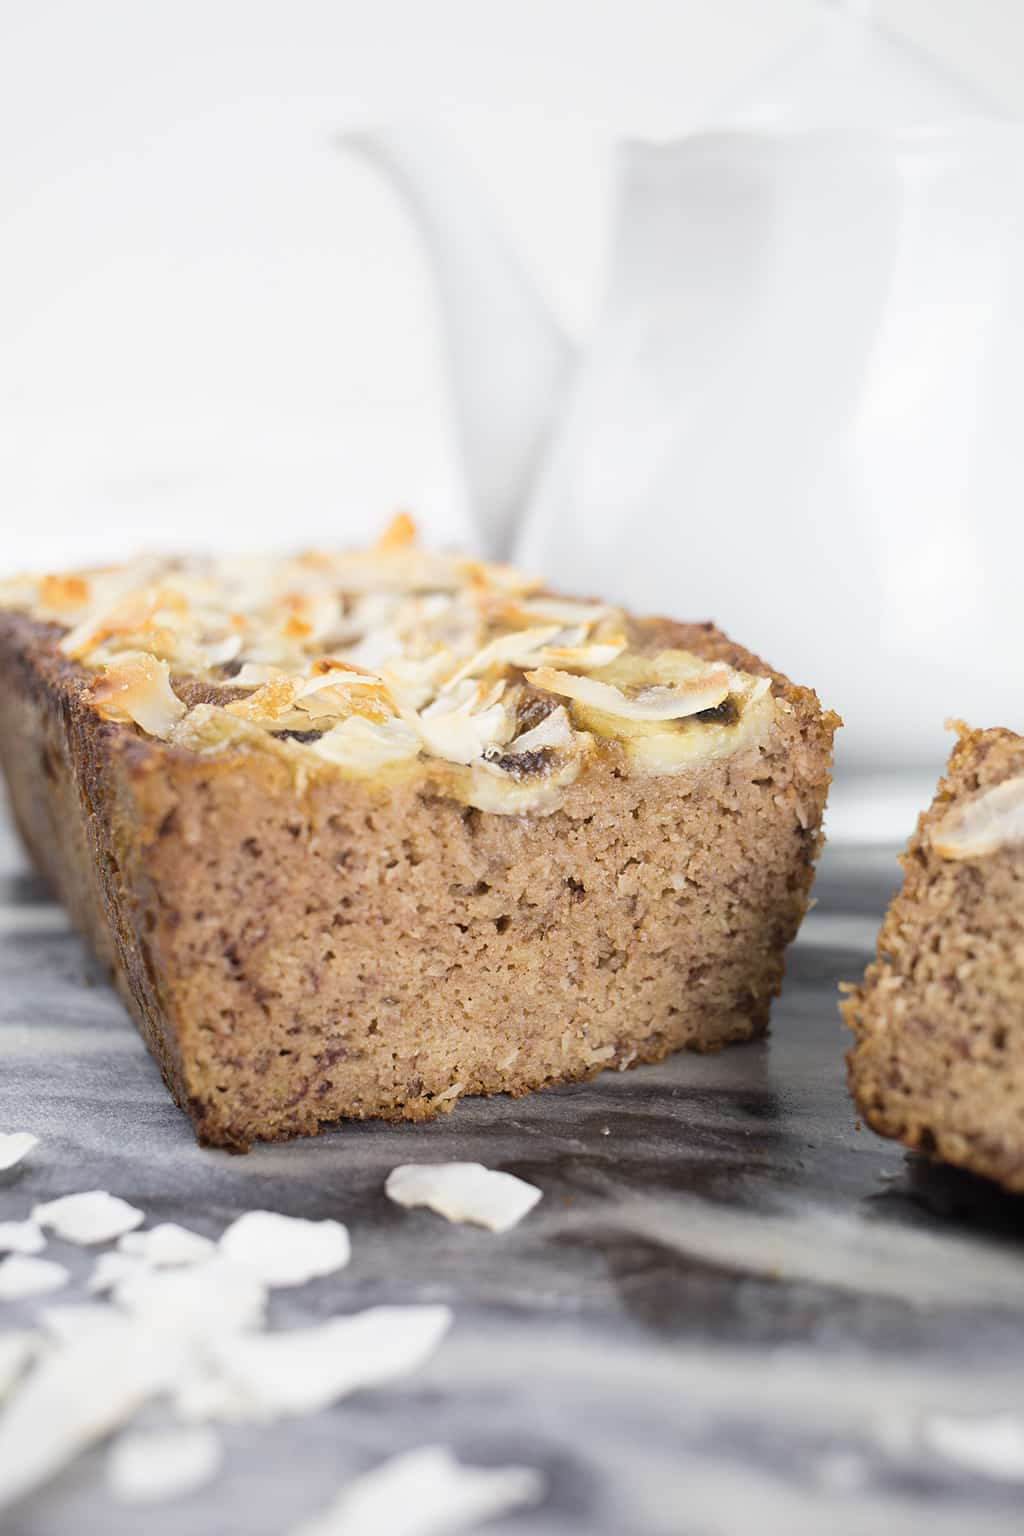 Coconut Banana Bread up close and sliced with teapot in background.